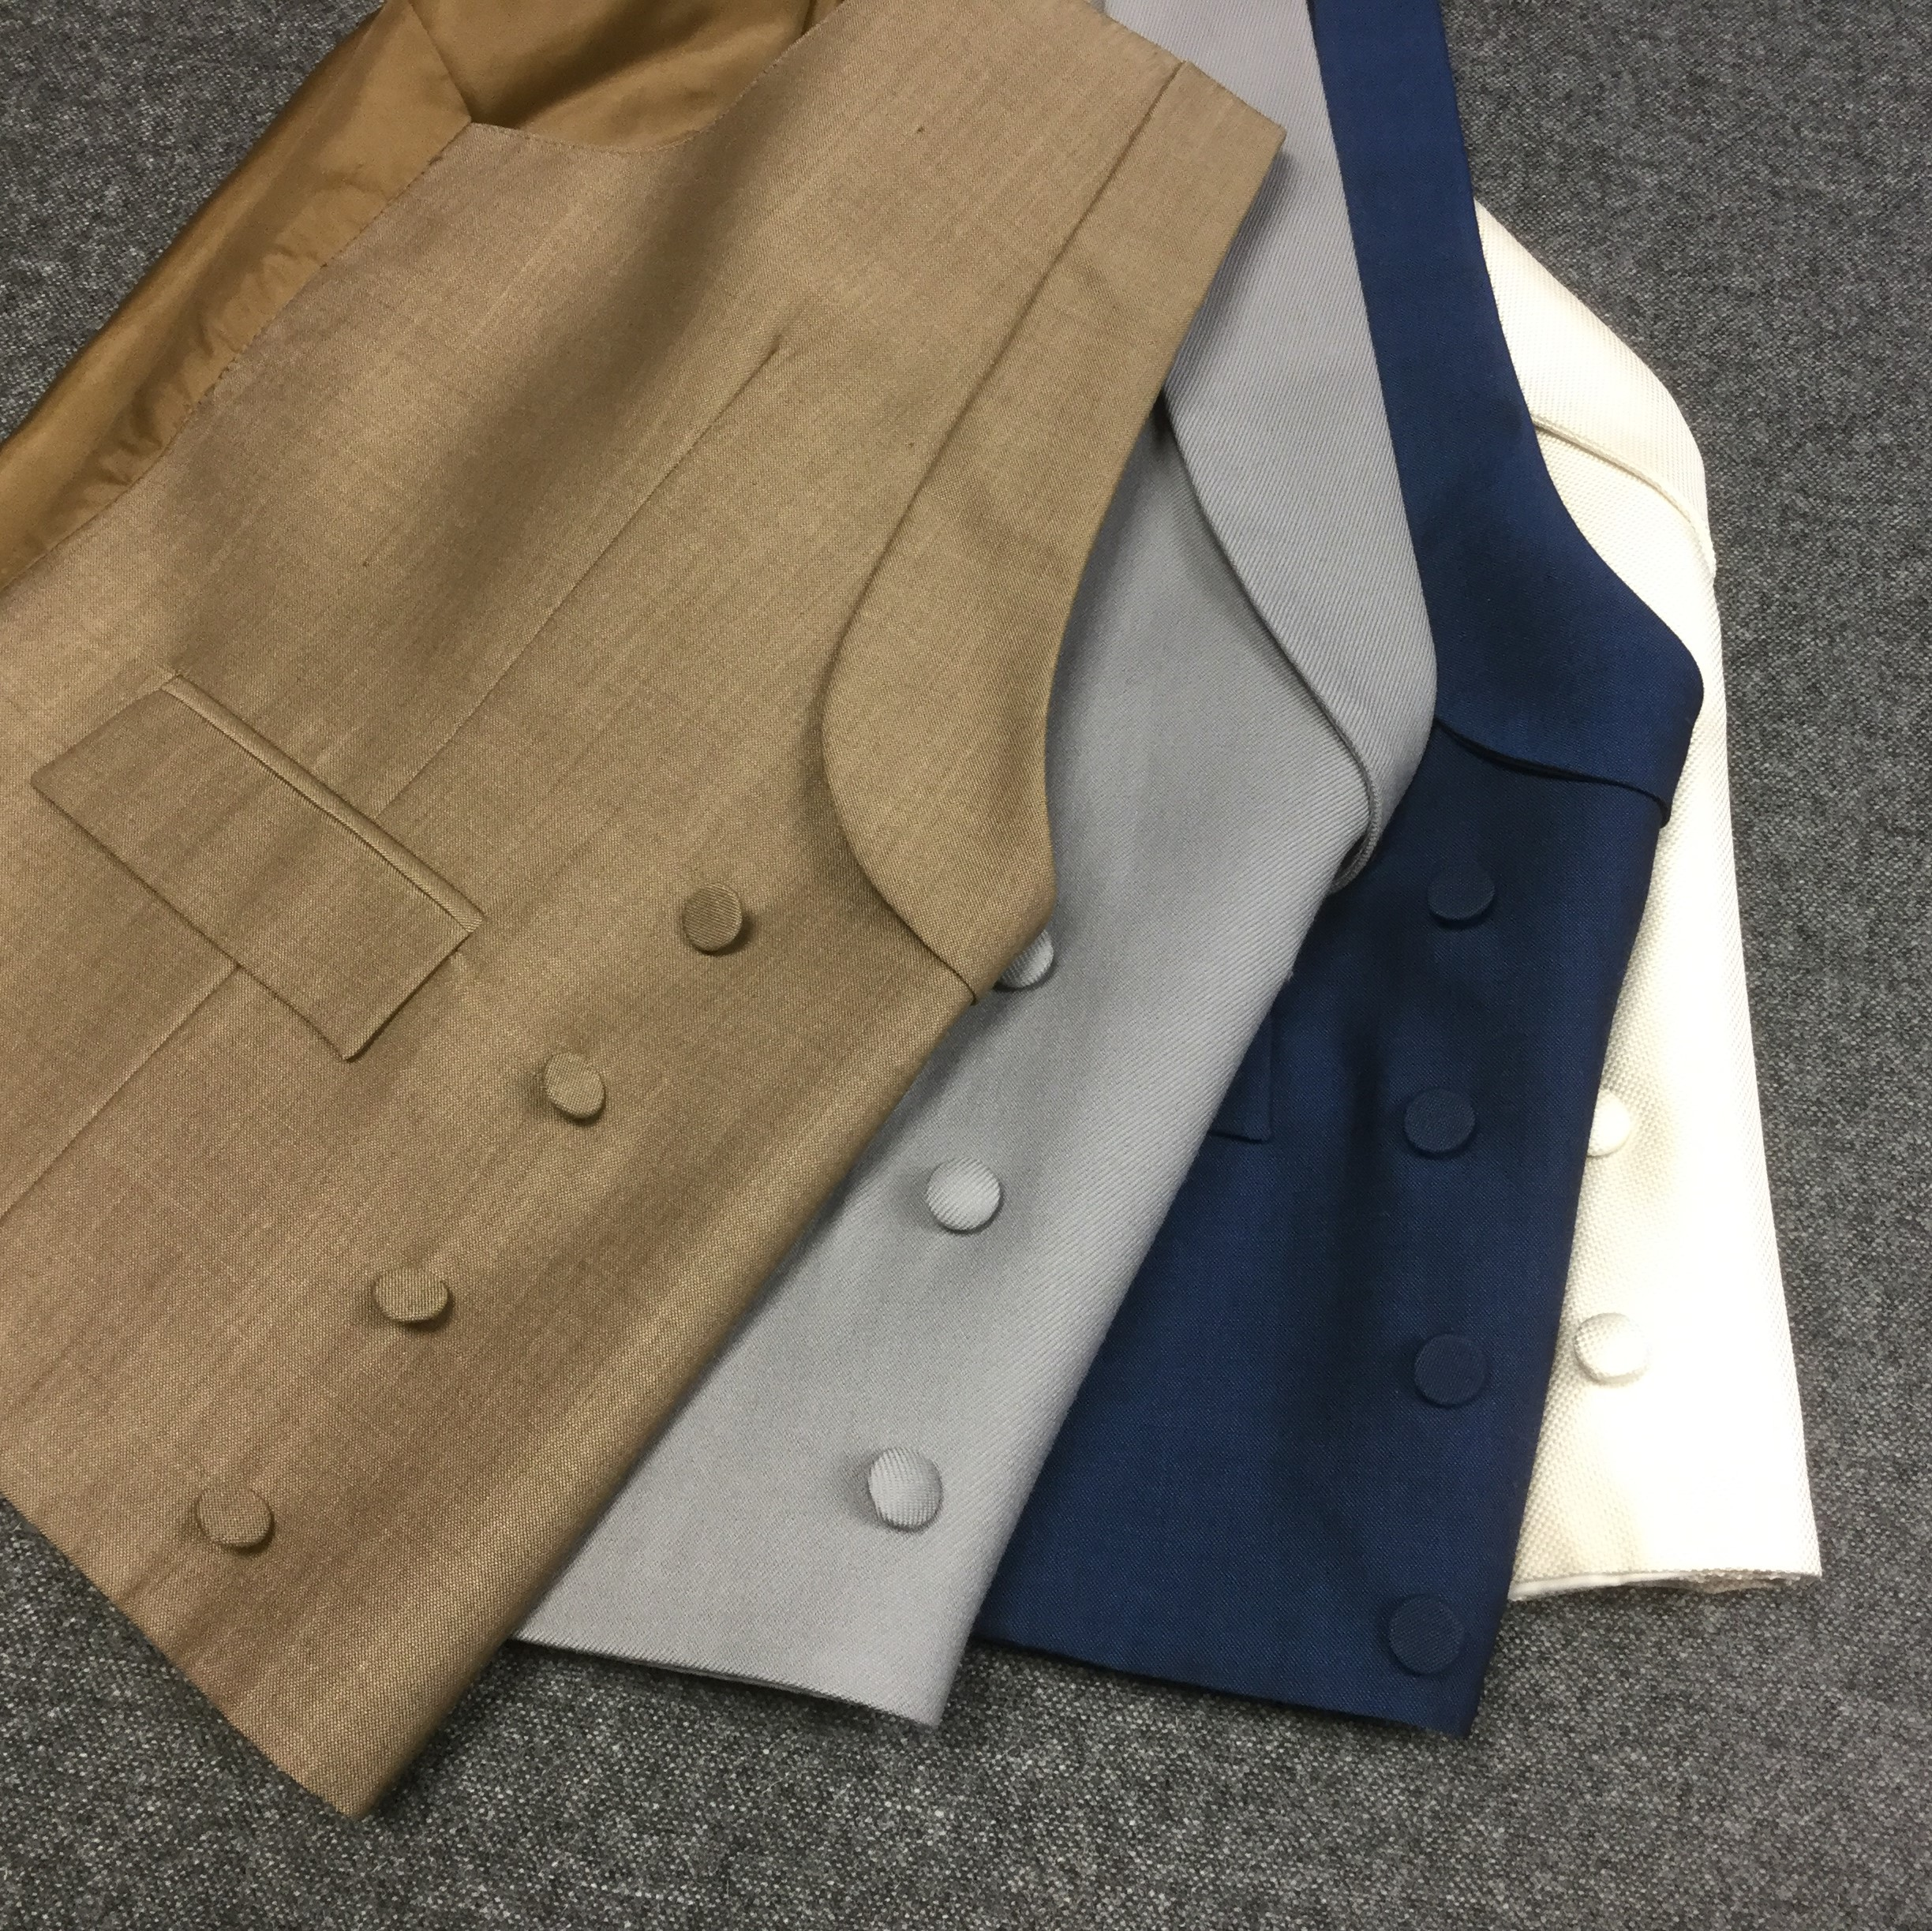 Double Breasted Waistcoats in Caramel, Grey, Royal Blue and Ivory